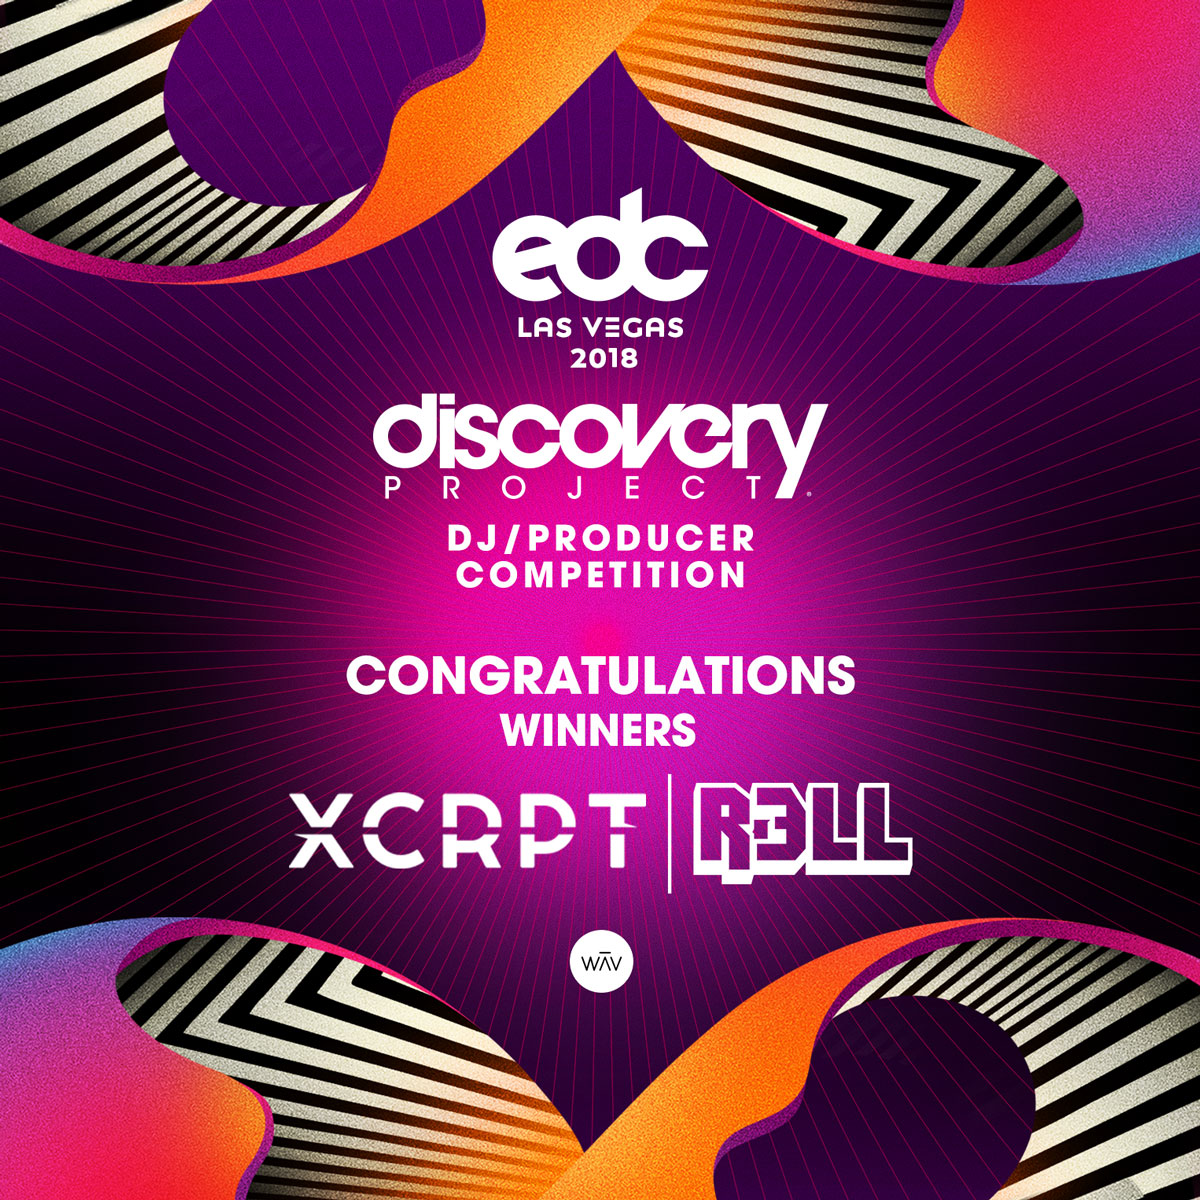 Meet the 2 Newest Discovery Project Inductees Bringing the Heat to EDC Las Vegas 2018